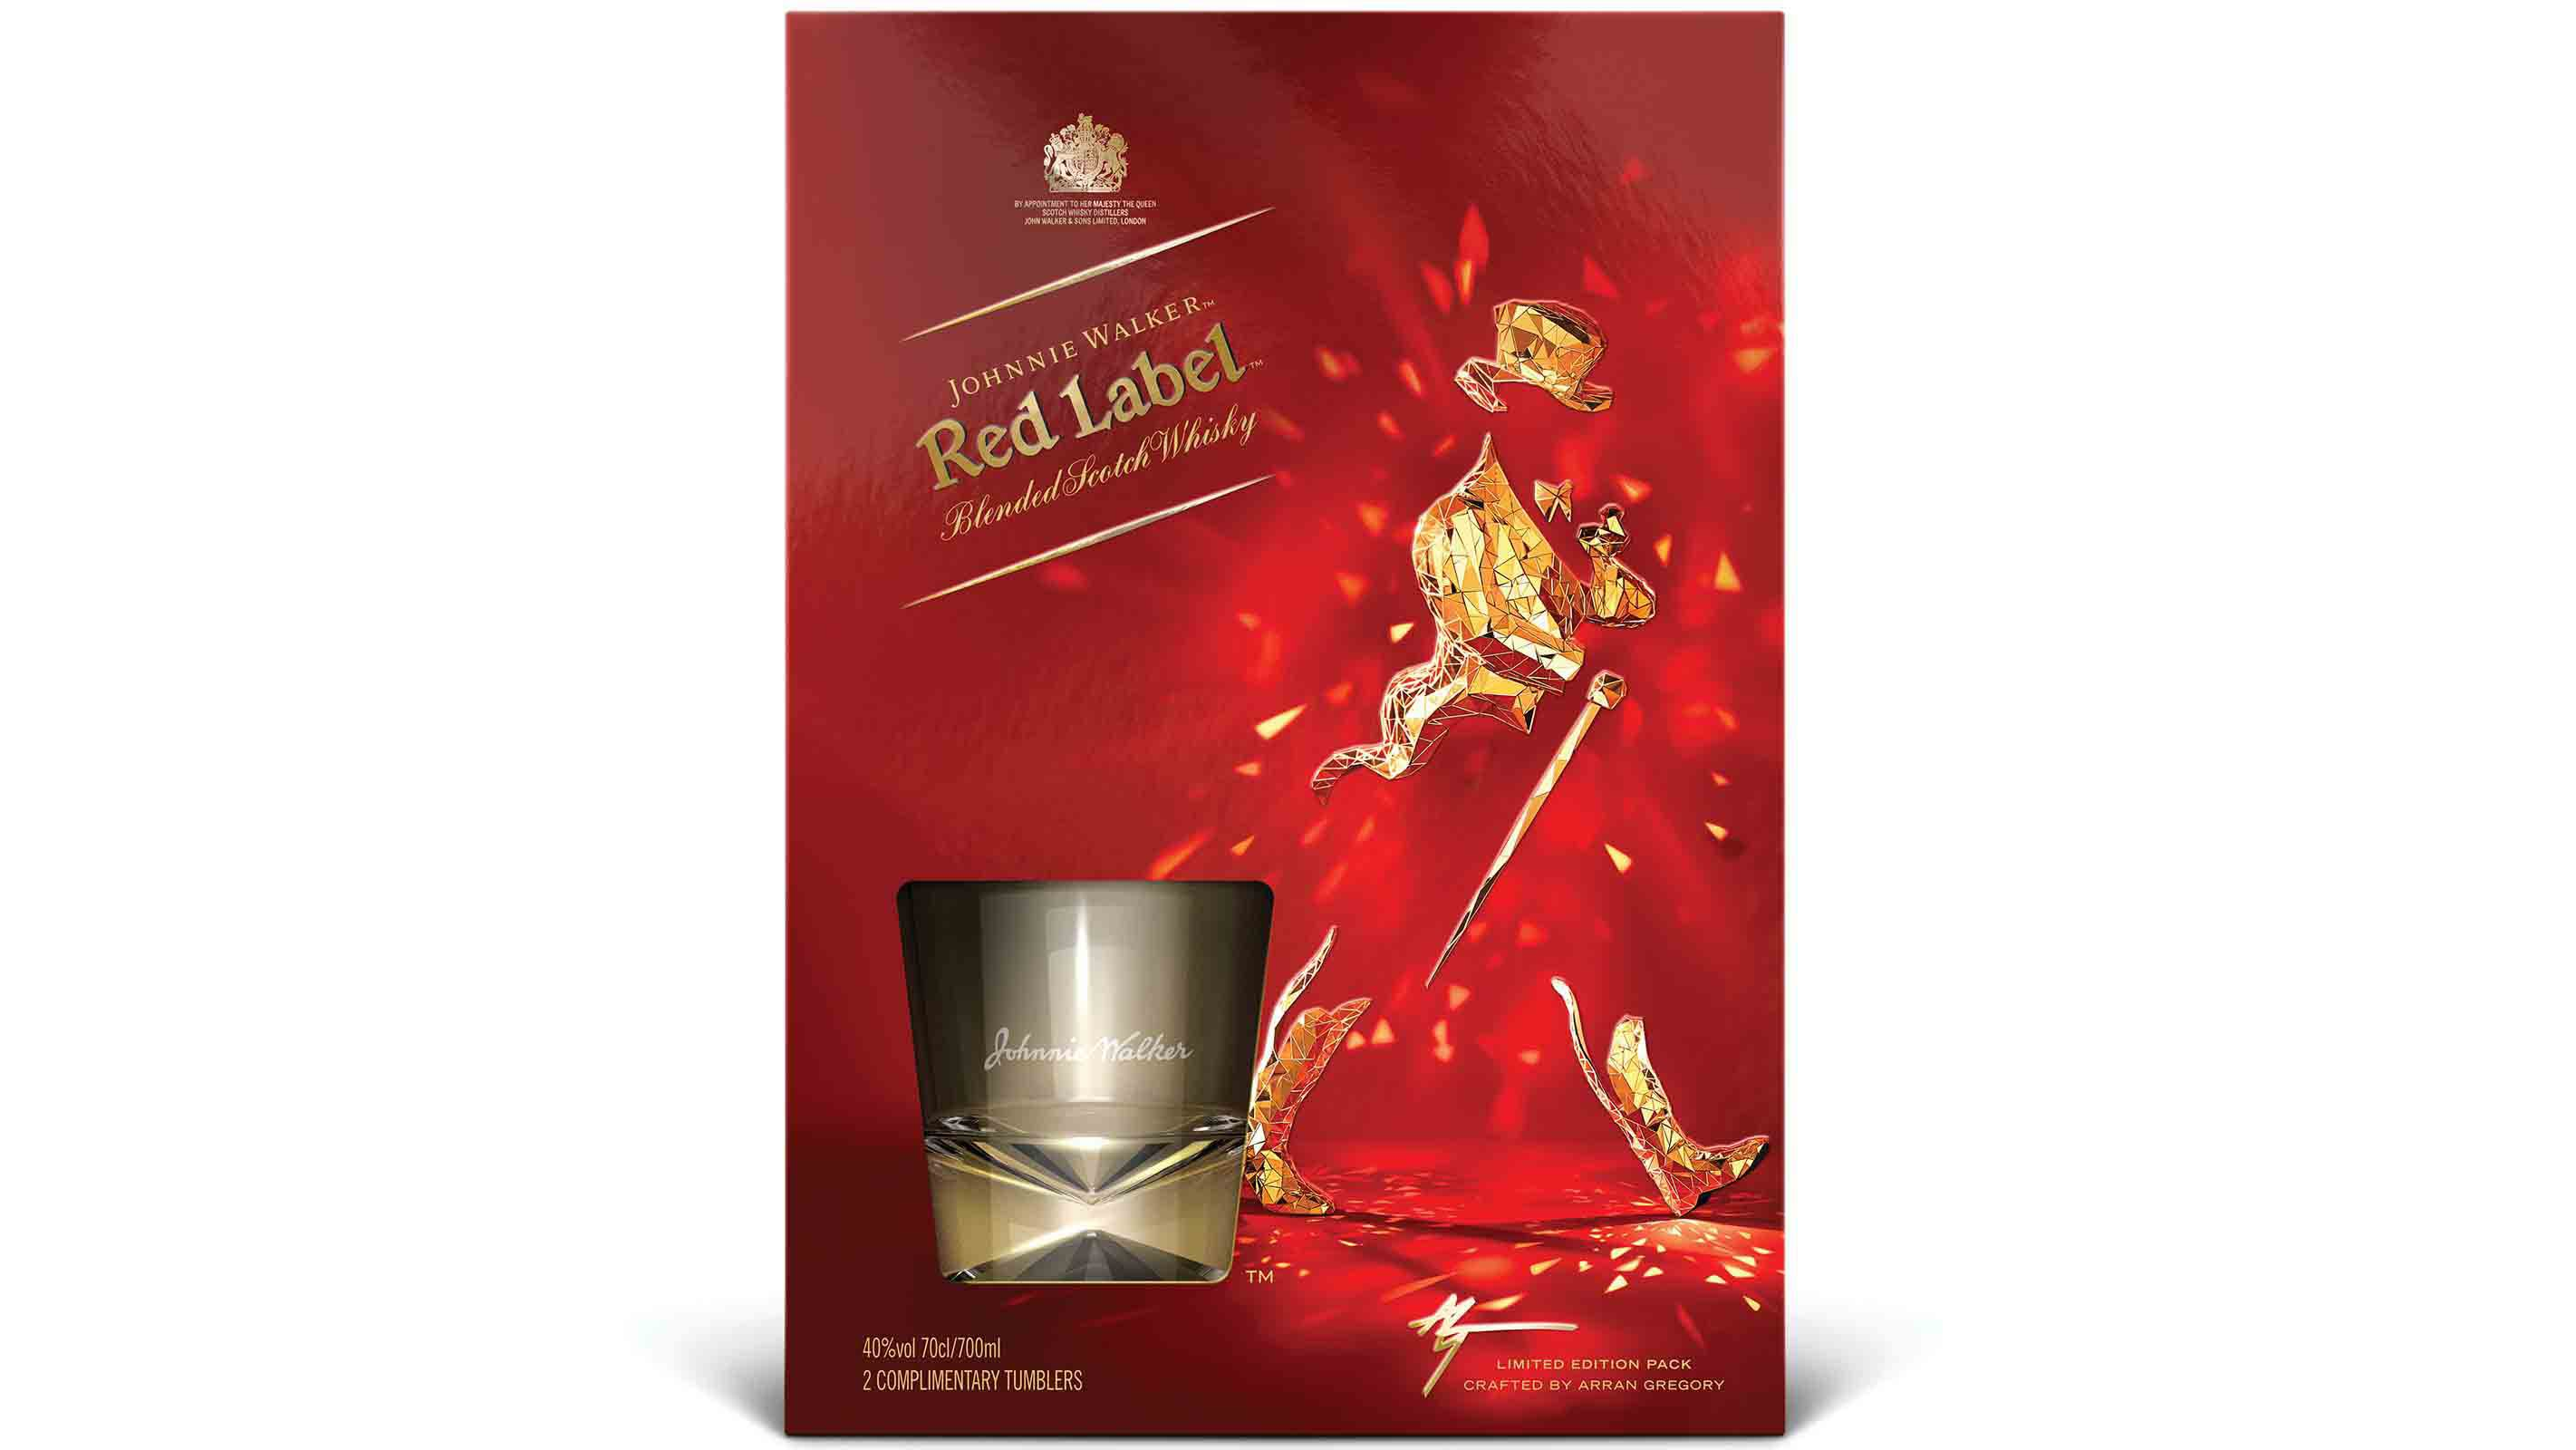 Pack de Johnnie Walker Red Label Limited Edition diseñado por Arran Gregory